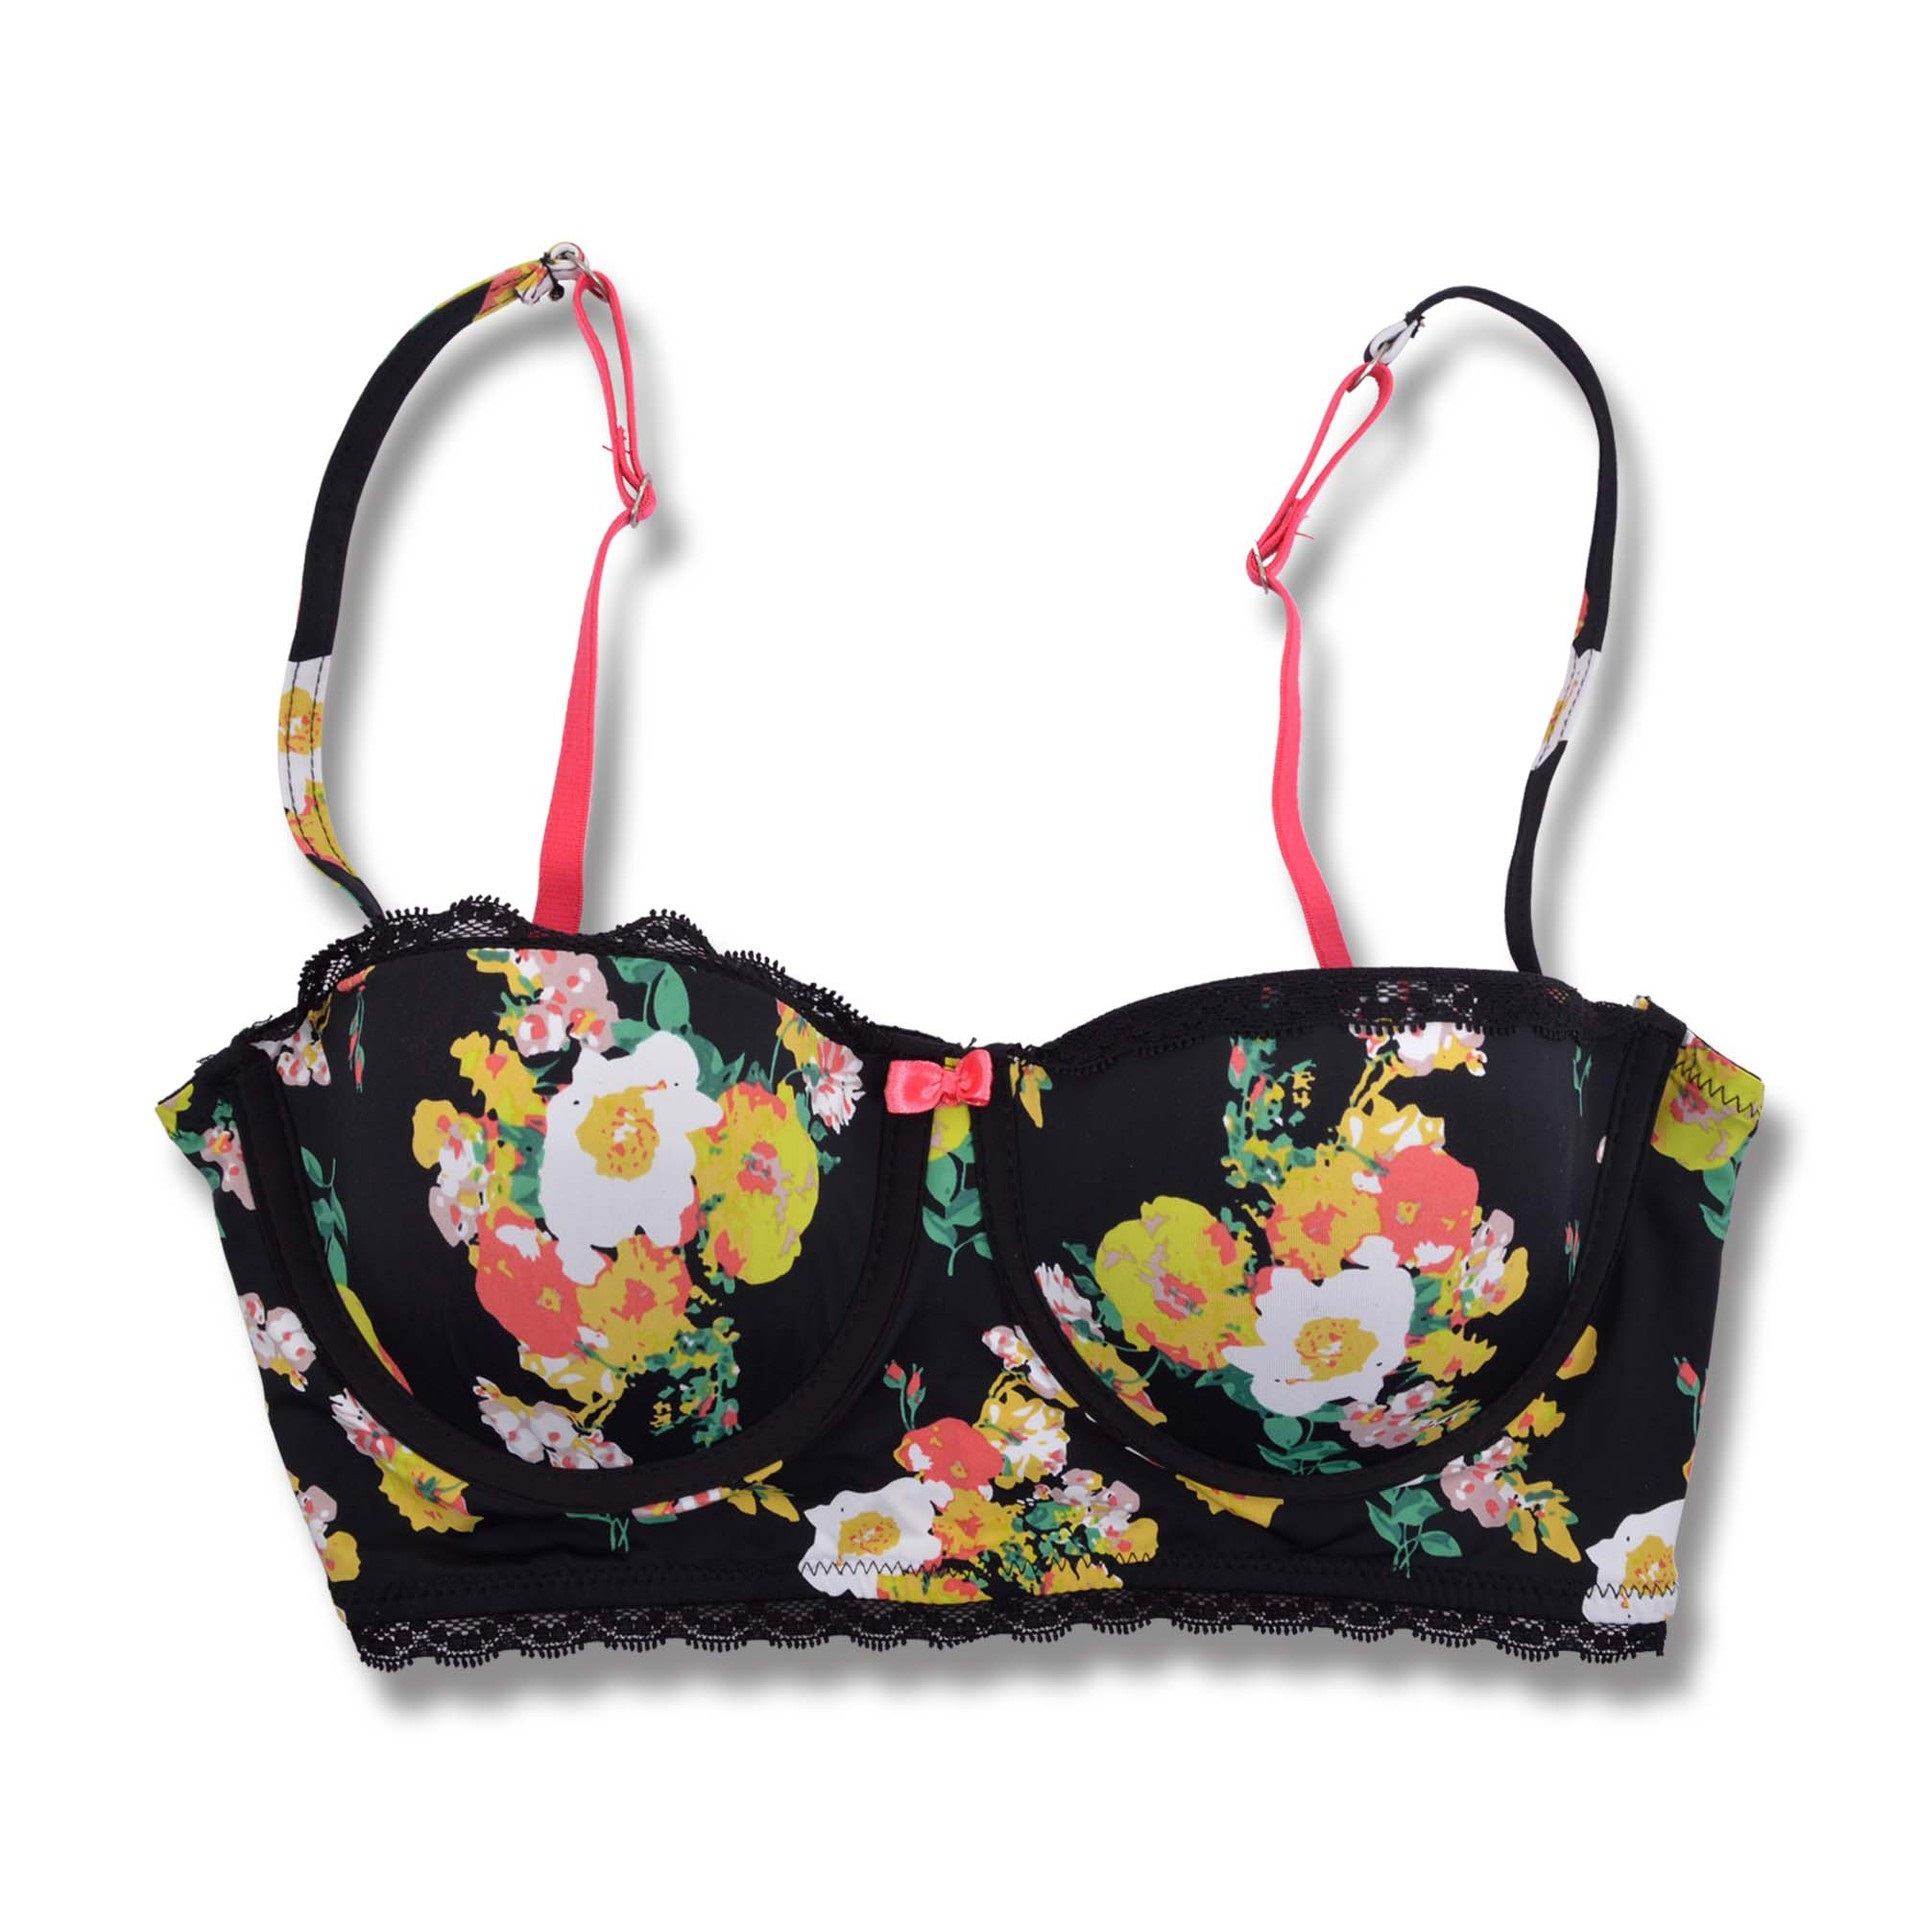 Unique Europe Floral Sexy Tub Bra Size: 75B, 75C